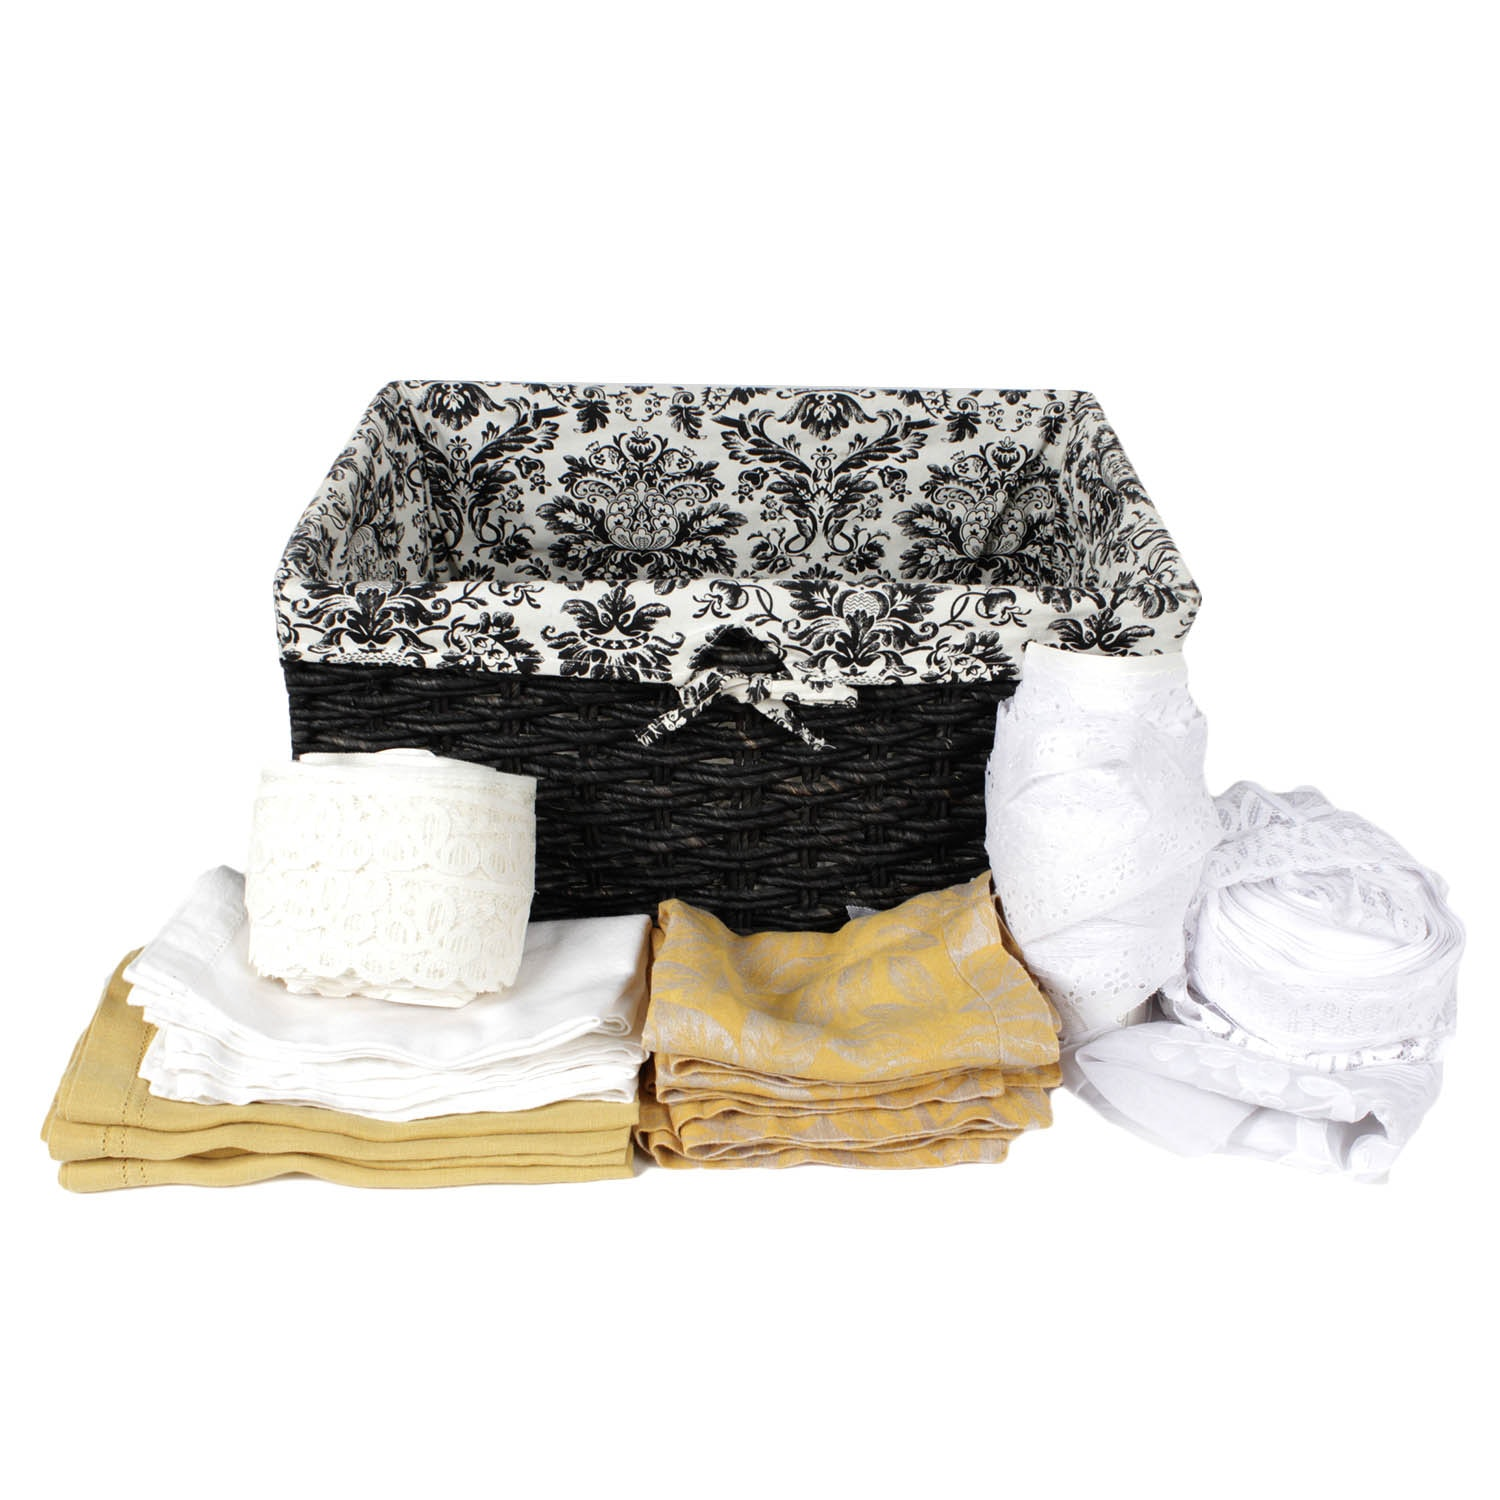 Lined Wicker Basket with Lace and Table Linens